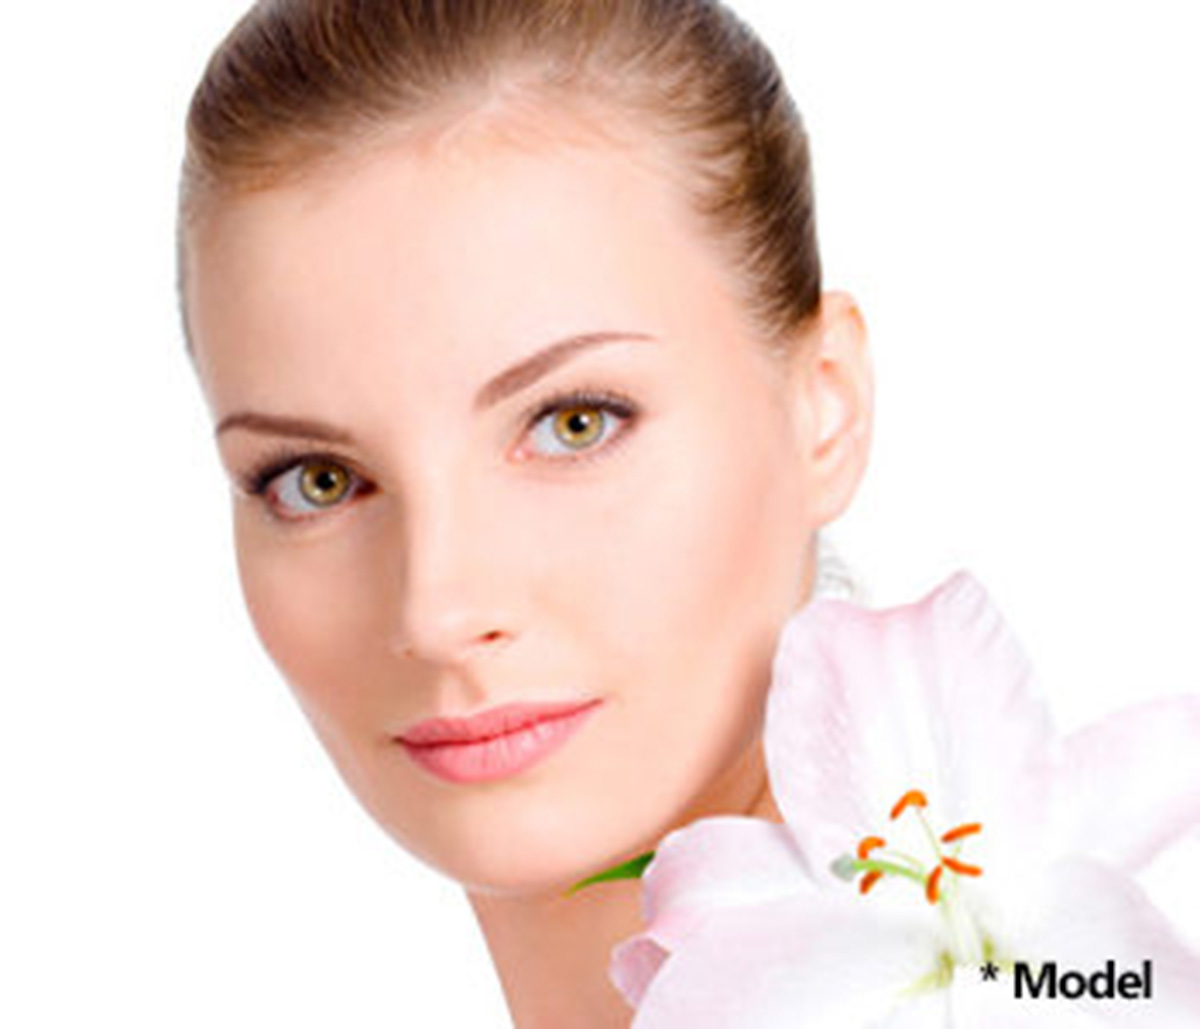 Plastic surgery services provided by doctor in Beverly Hills